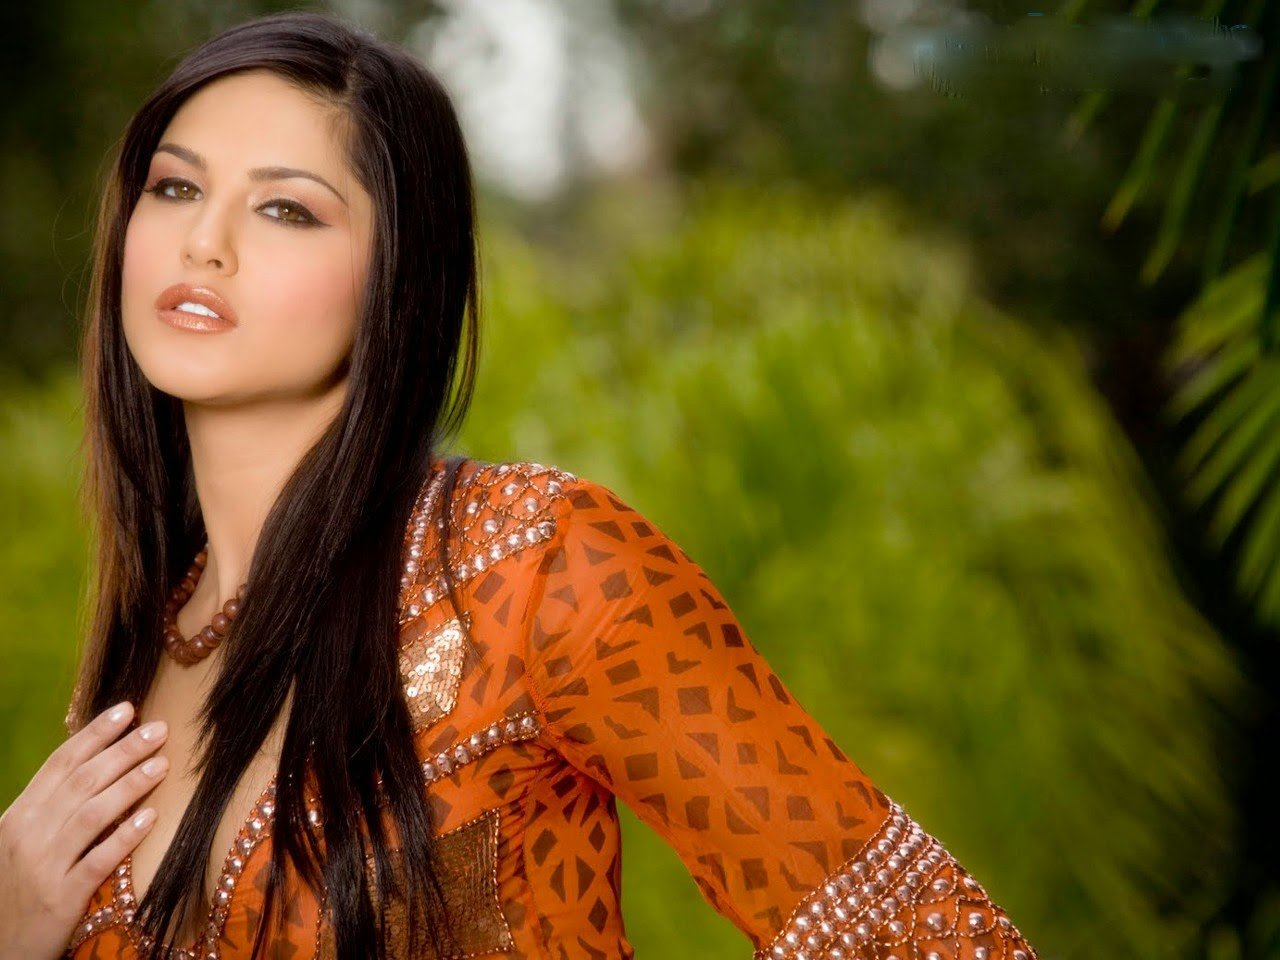 leone wallpapers sunny leone hq wallpapers sunny leone wallpapers 1280x960